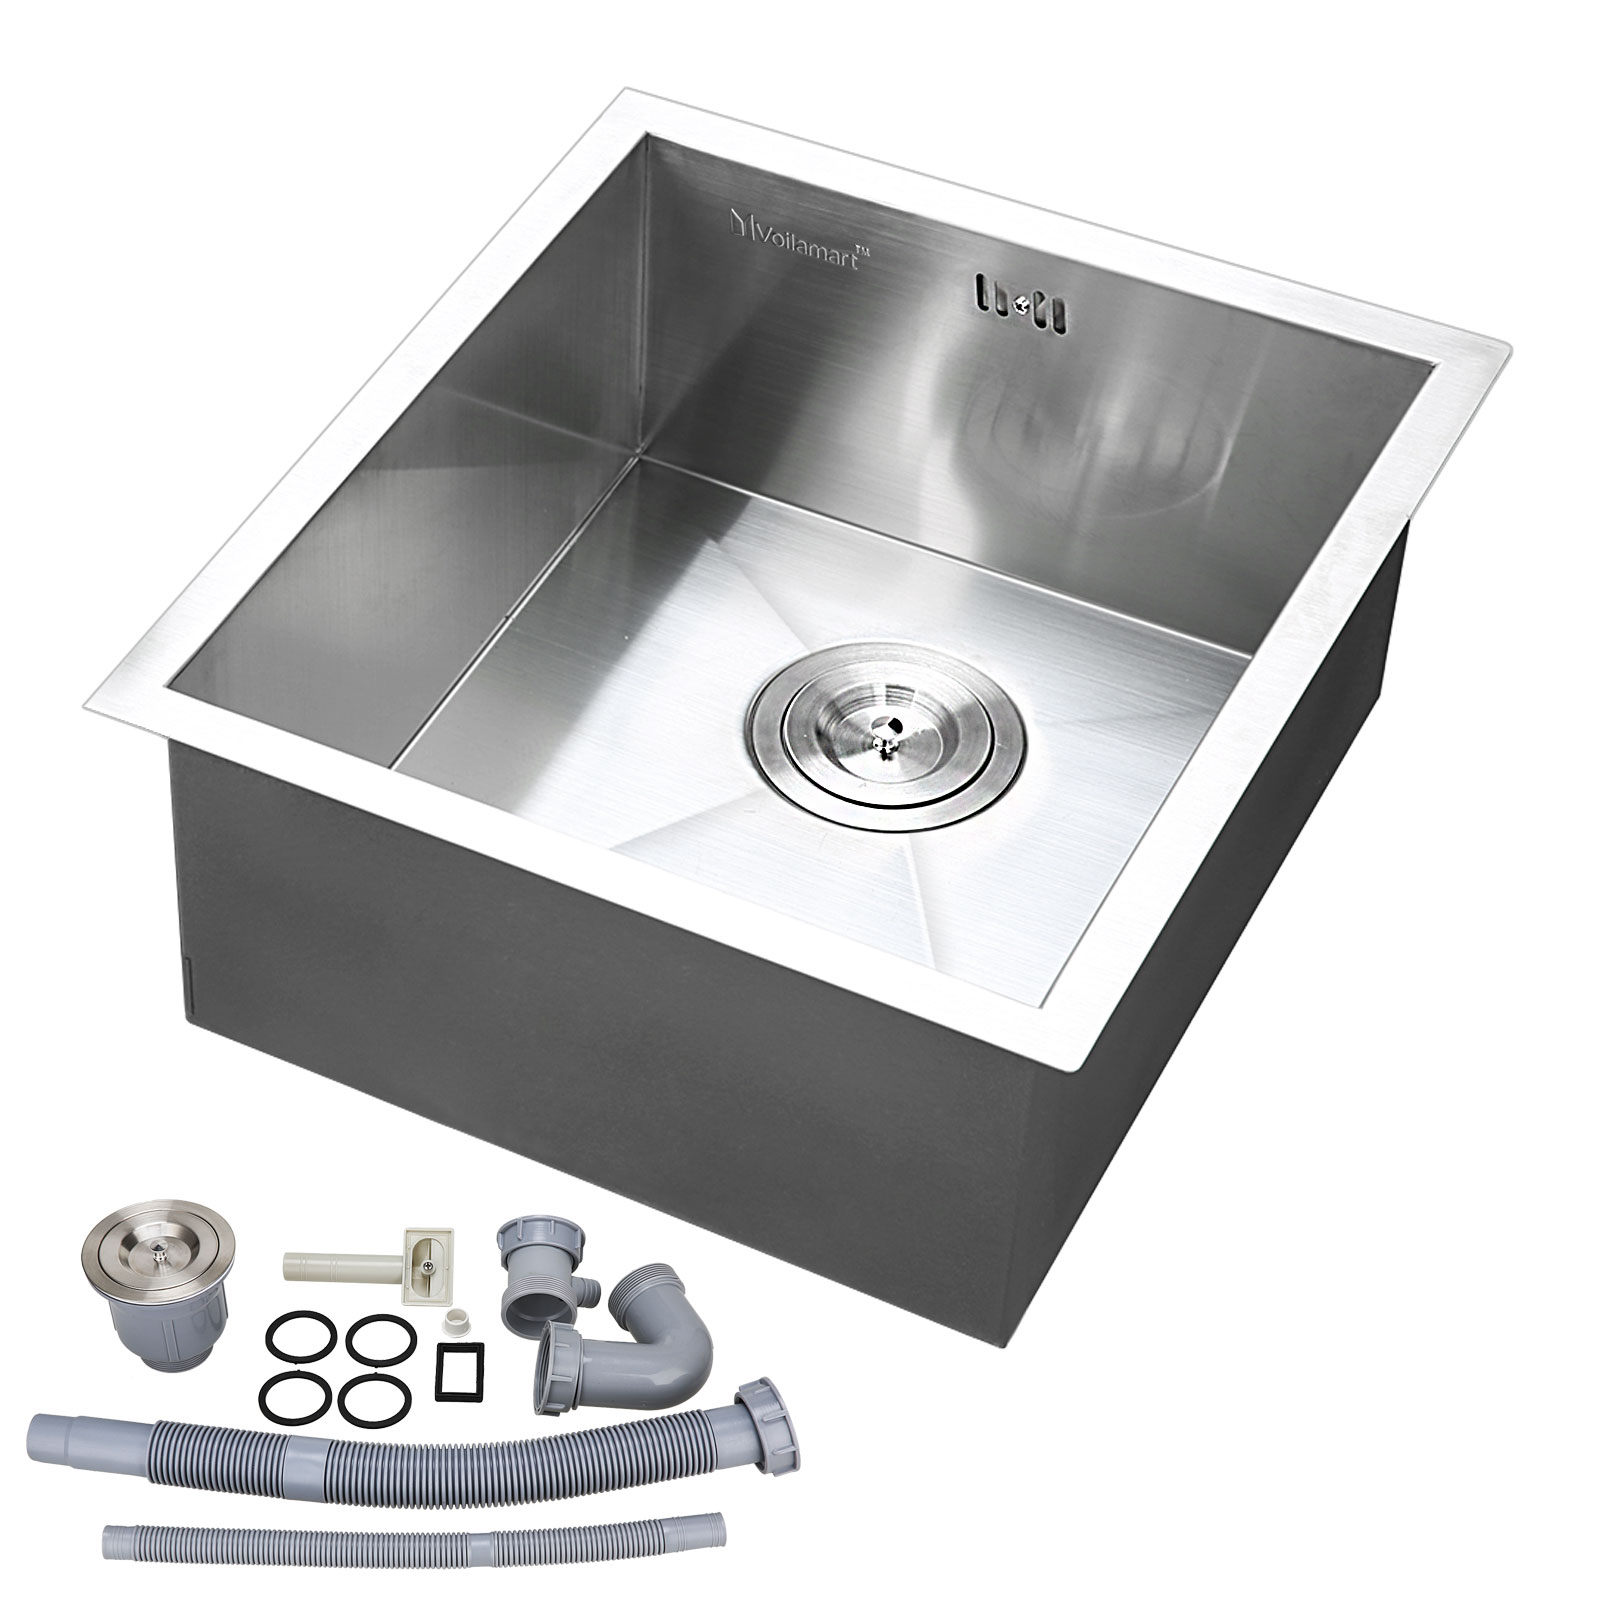 Stainless Steel Kitchen Sink Square Bowl Laundry Washing